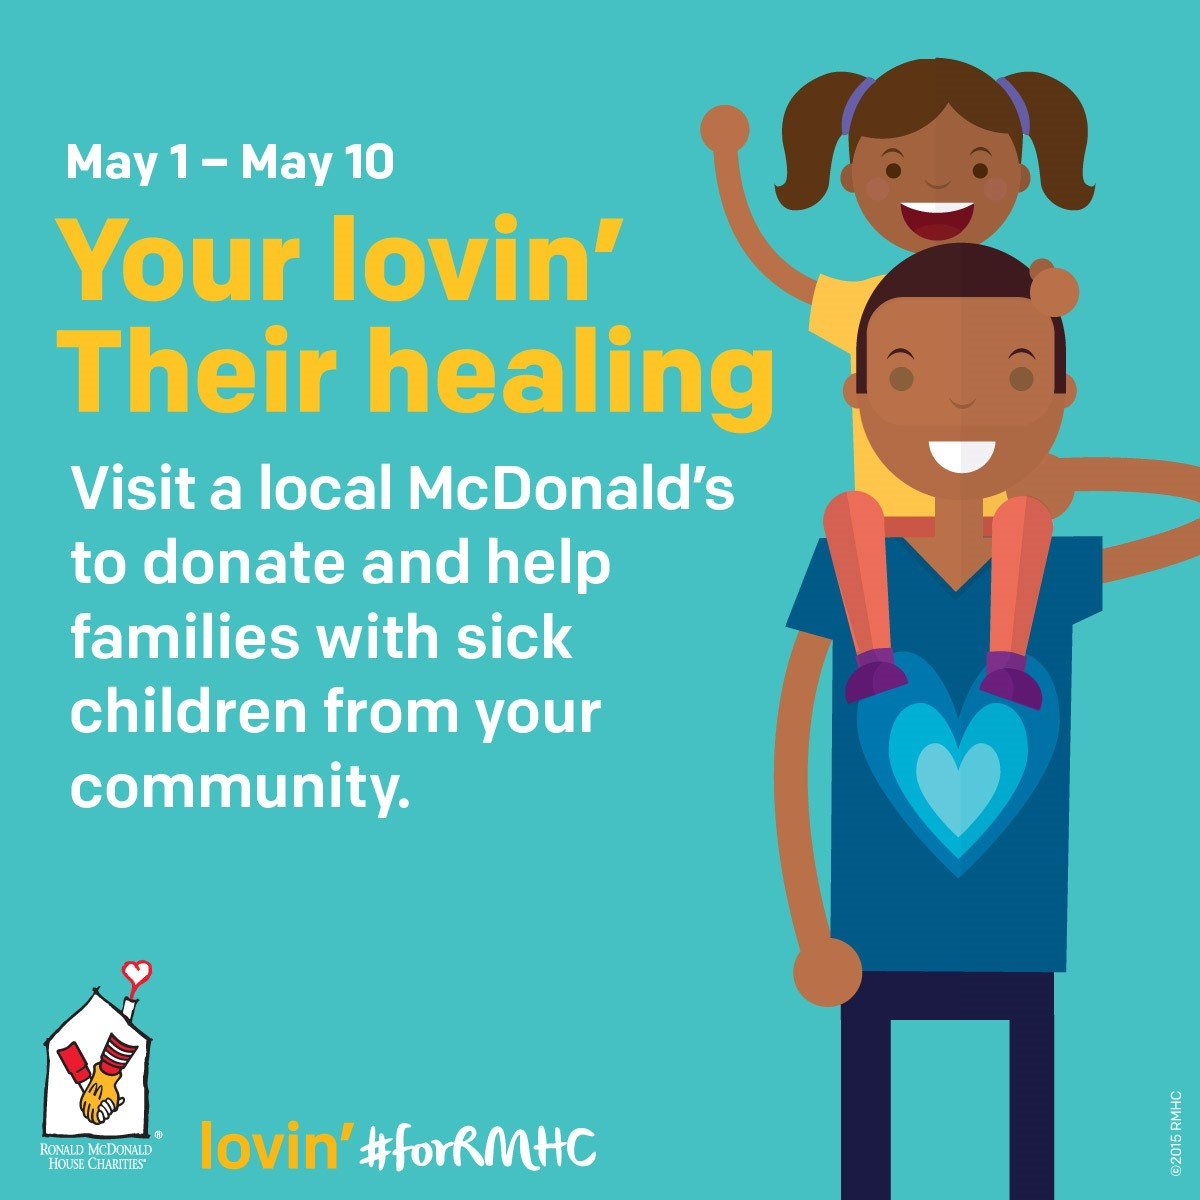 Show Your Lovin' #forRMHC & Support Families of Sick Children